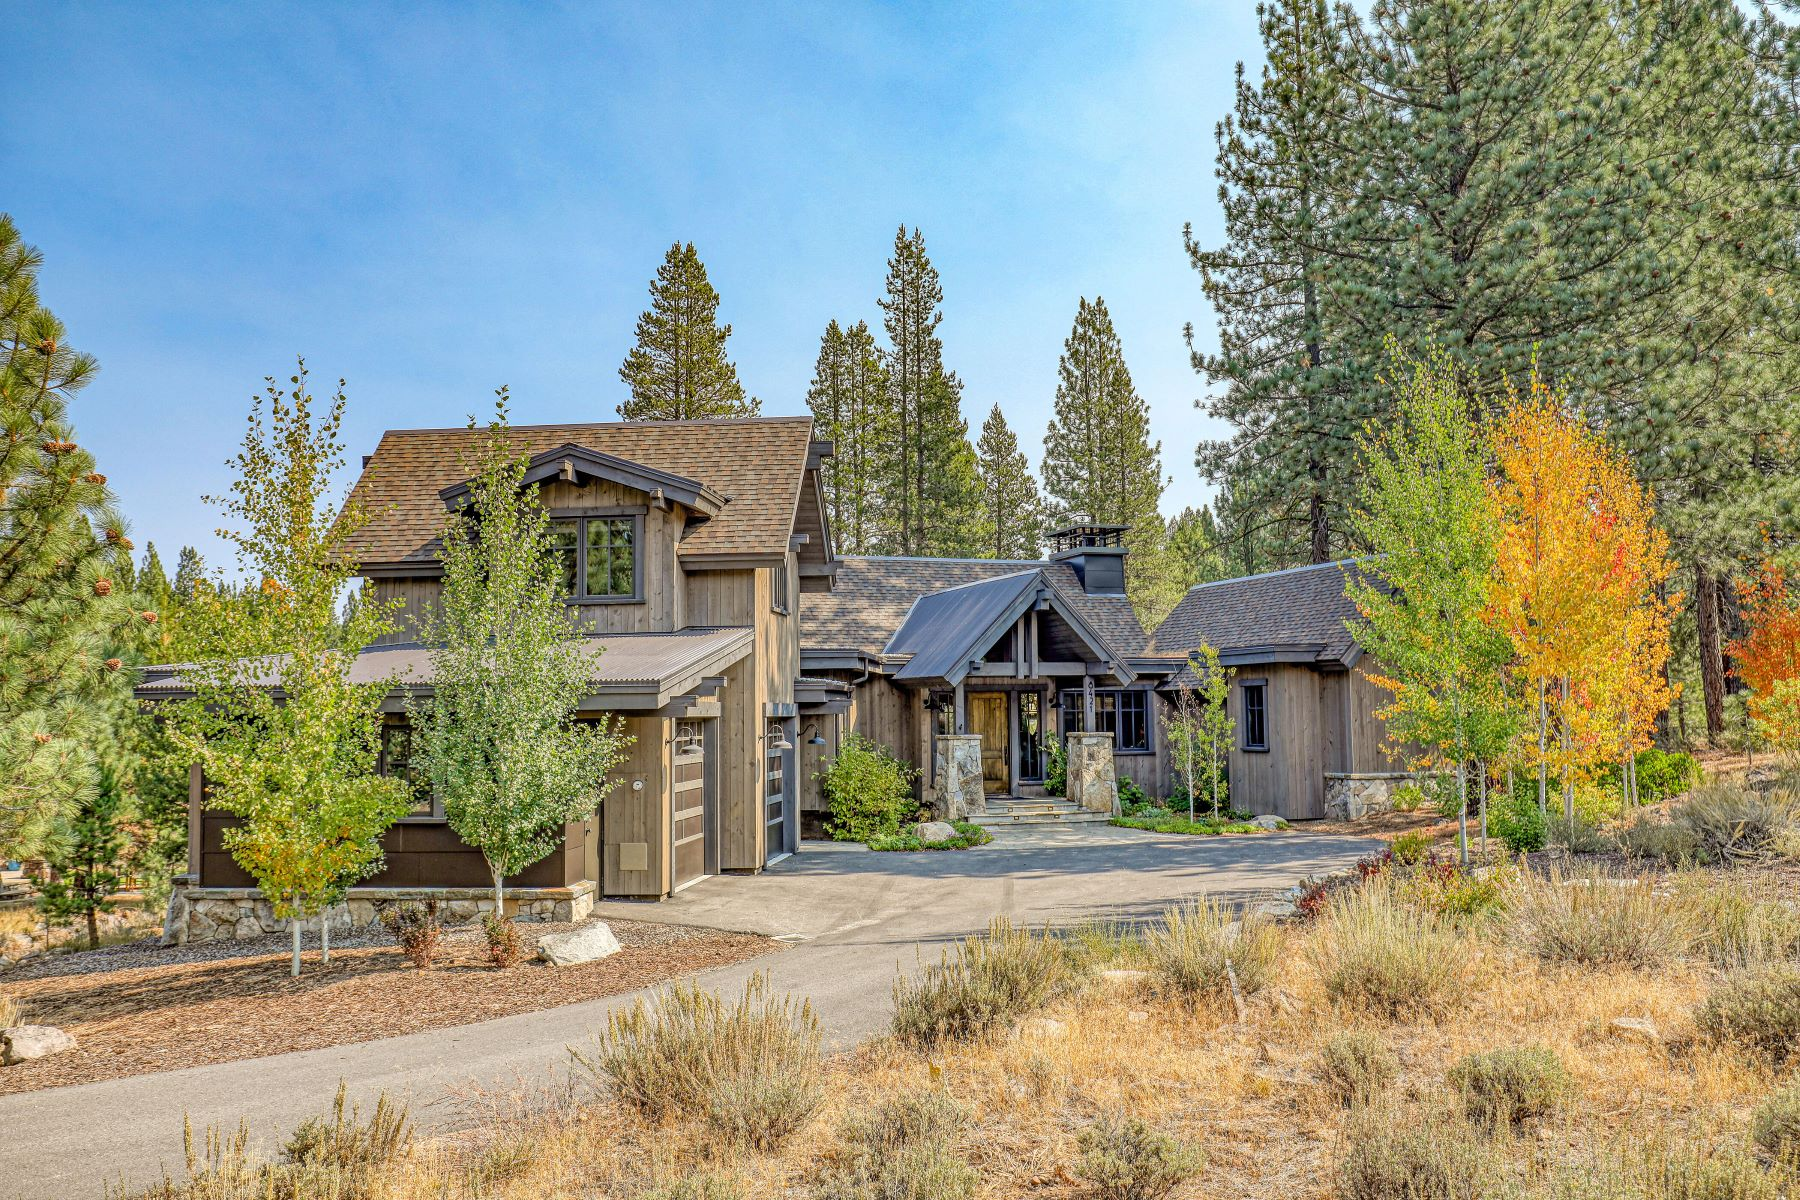 Single Family Homes for Active at Premiere Home In Lahontan 8421 Jake Teeter Truckee, California 96161 United States